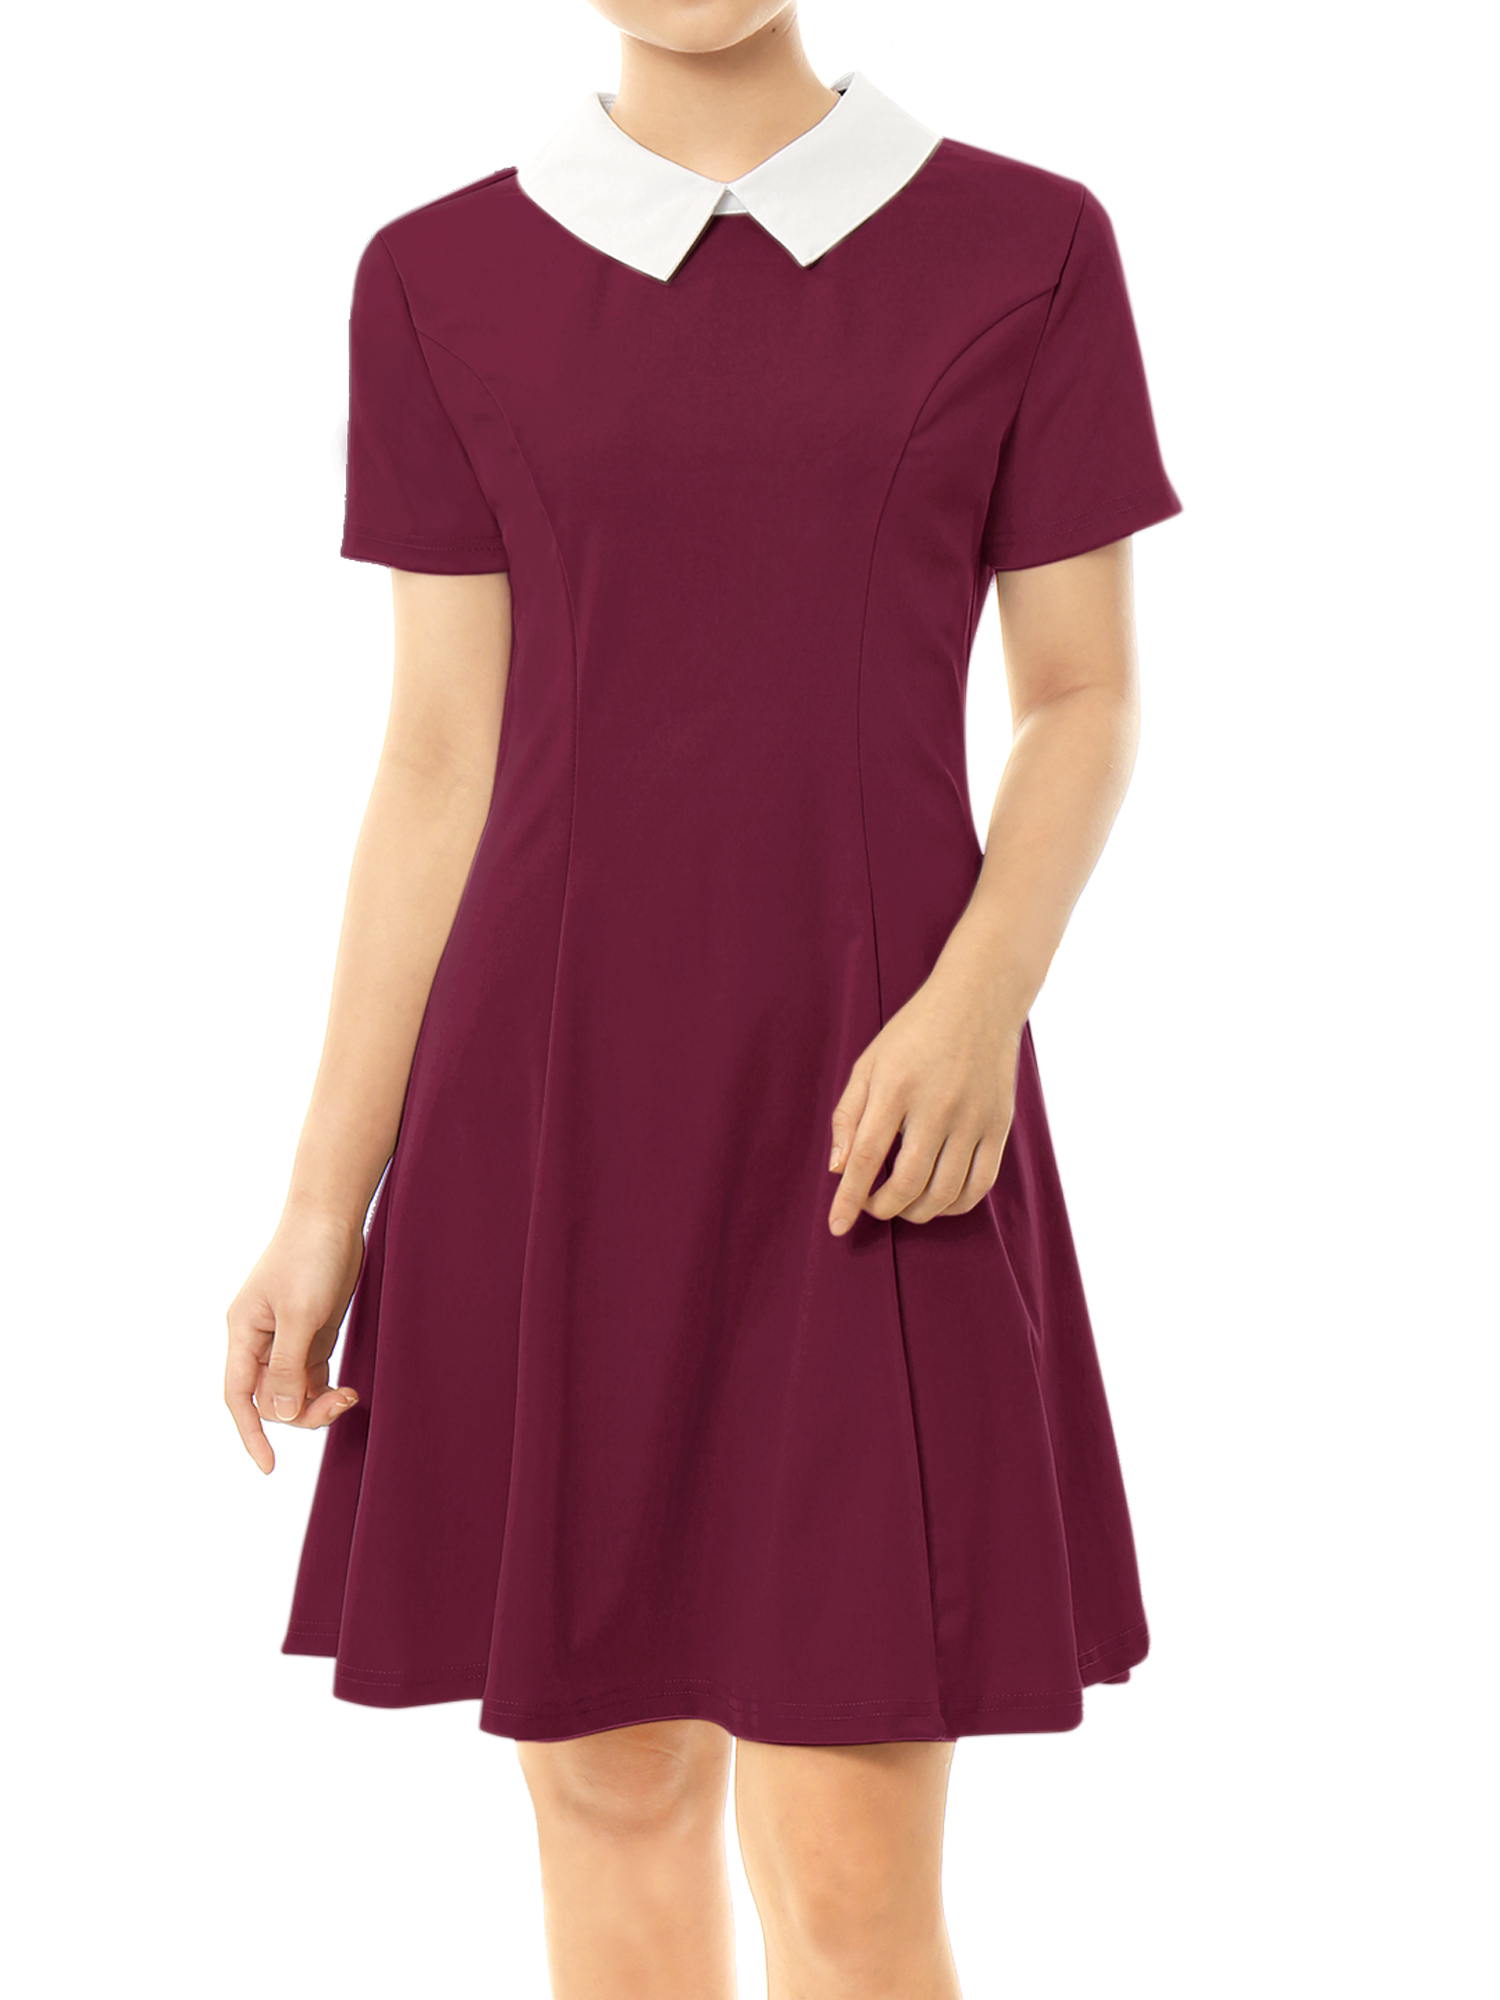 Allegra K Women Doll Collar Short Sleeves Fit and Flare Dress Red XS